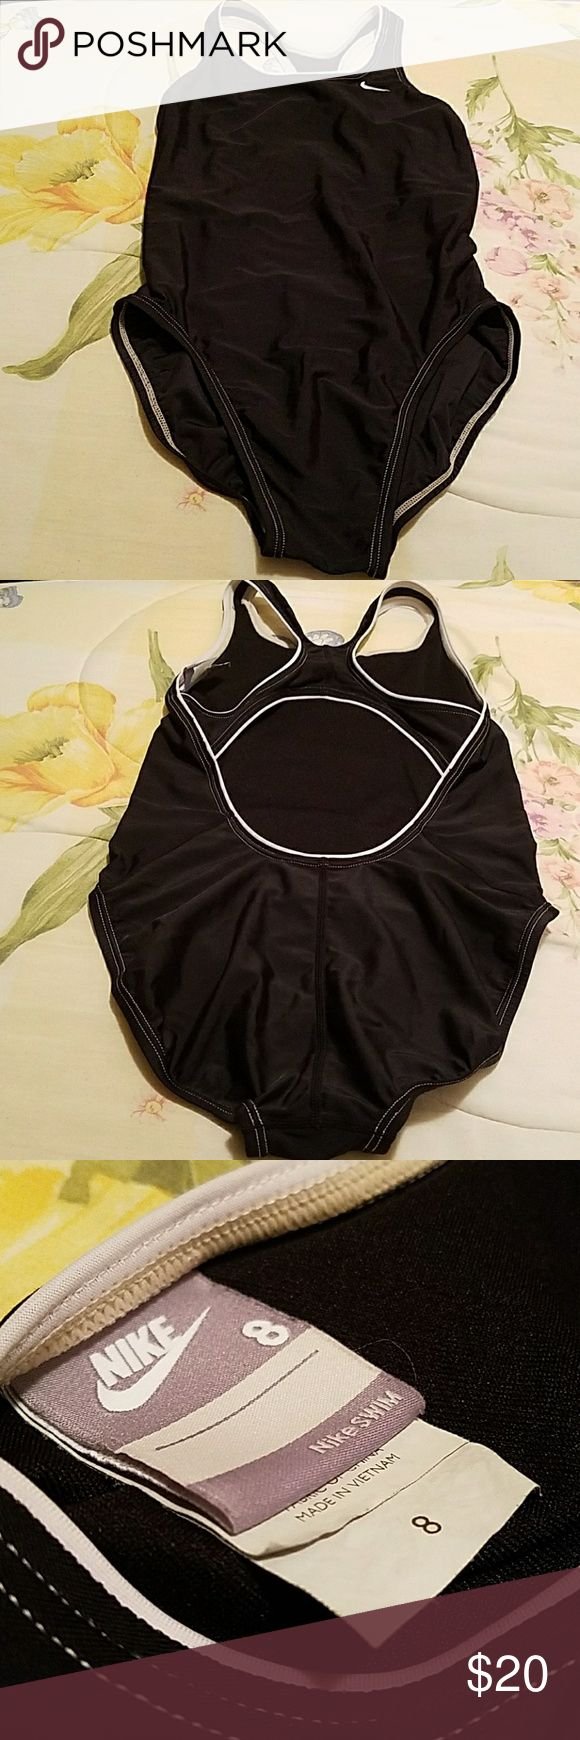 Nike Power Back One Piece Swimsuit Black Nike one piece swimsuit with white trim details. Perfect for swim practice or a more conservative look.  Girls size 8 but can fit a petite woman. Measurements in inches:  Bust: 29 1/2 Waist: 22 Hip: 32 1/4 Torso: 56 1/4  81% nylon, 19% spandex Lining: 100% polyester  OFFERS ARE WELCOME! Nike Swim One Piece